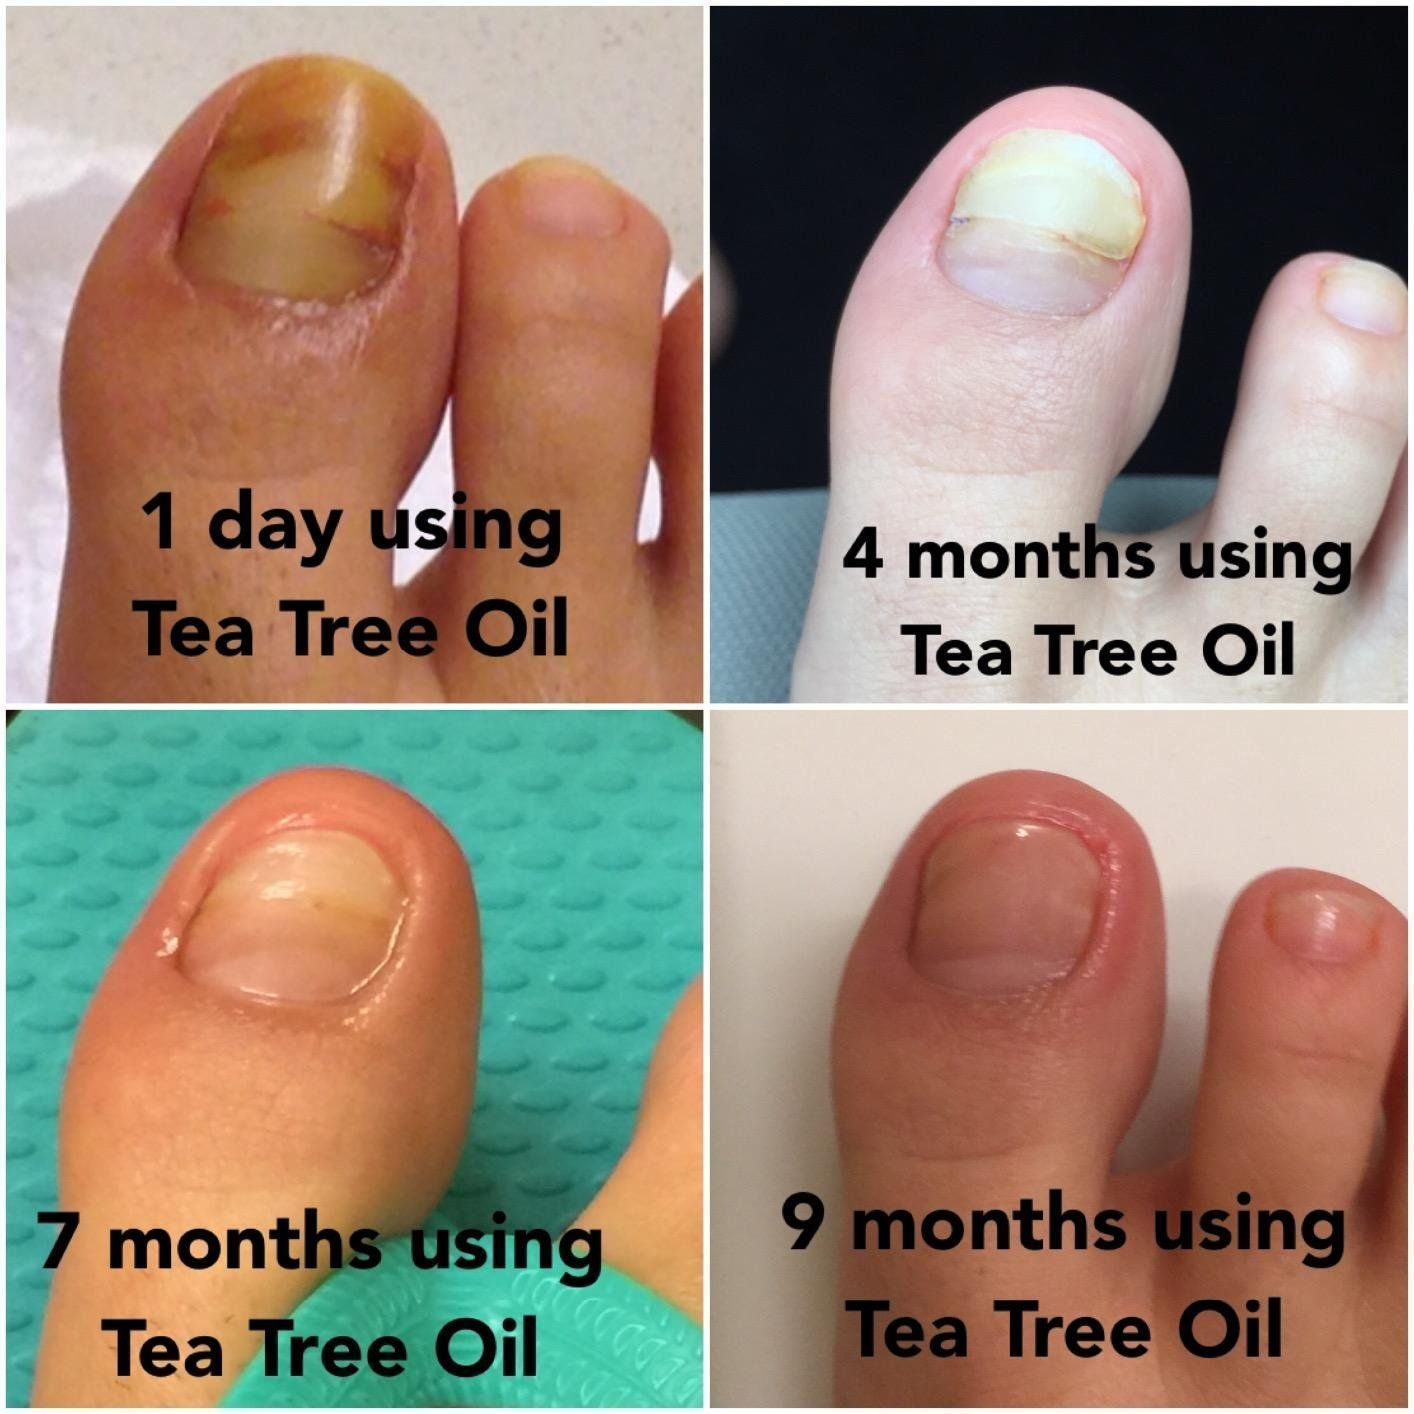 Amazon.com: Tea Tree Oil Foot Soak With Epsom Salt, Helps Treat Nail ...